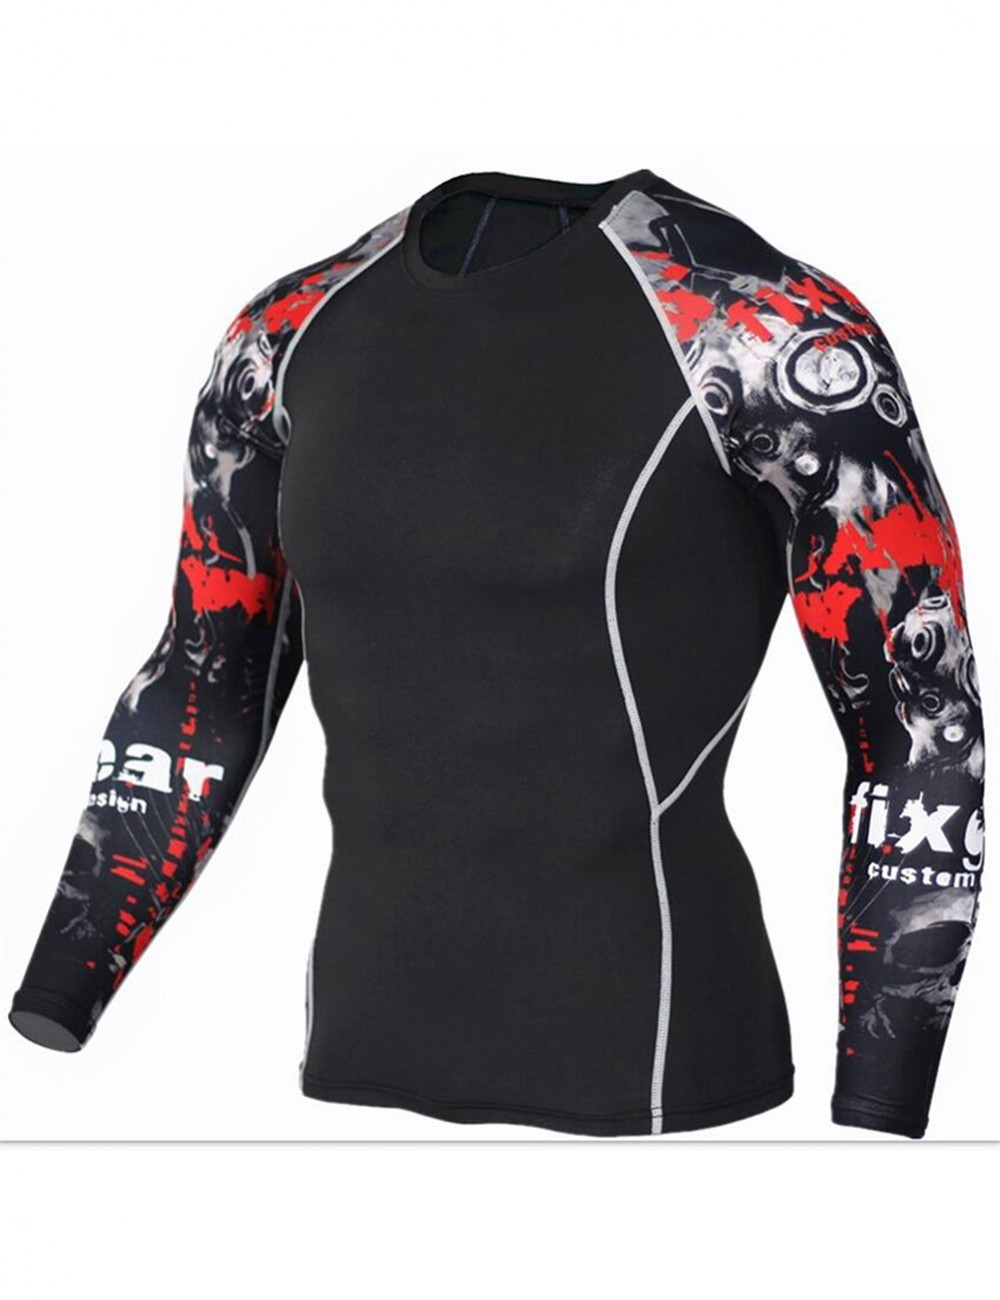 Cheeky Quick Drying Print Large Size Tops Absorbs Moisture